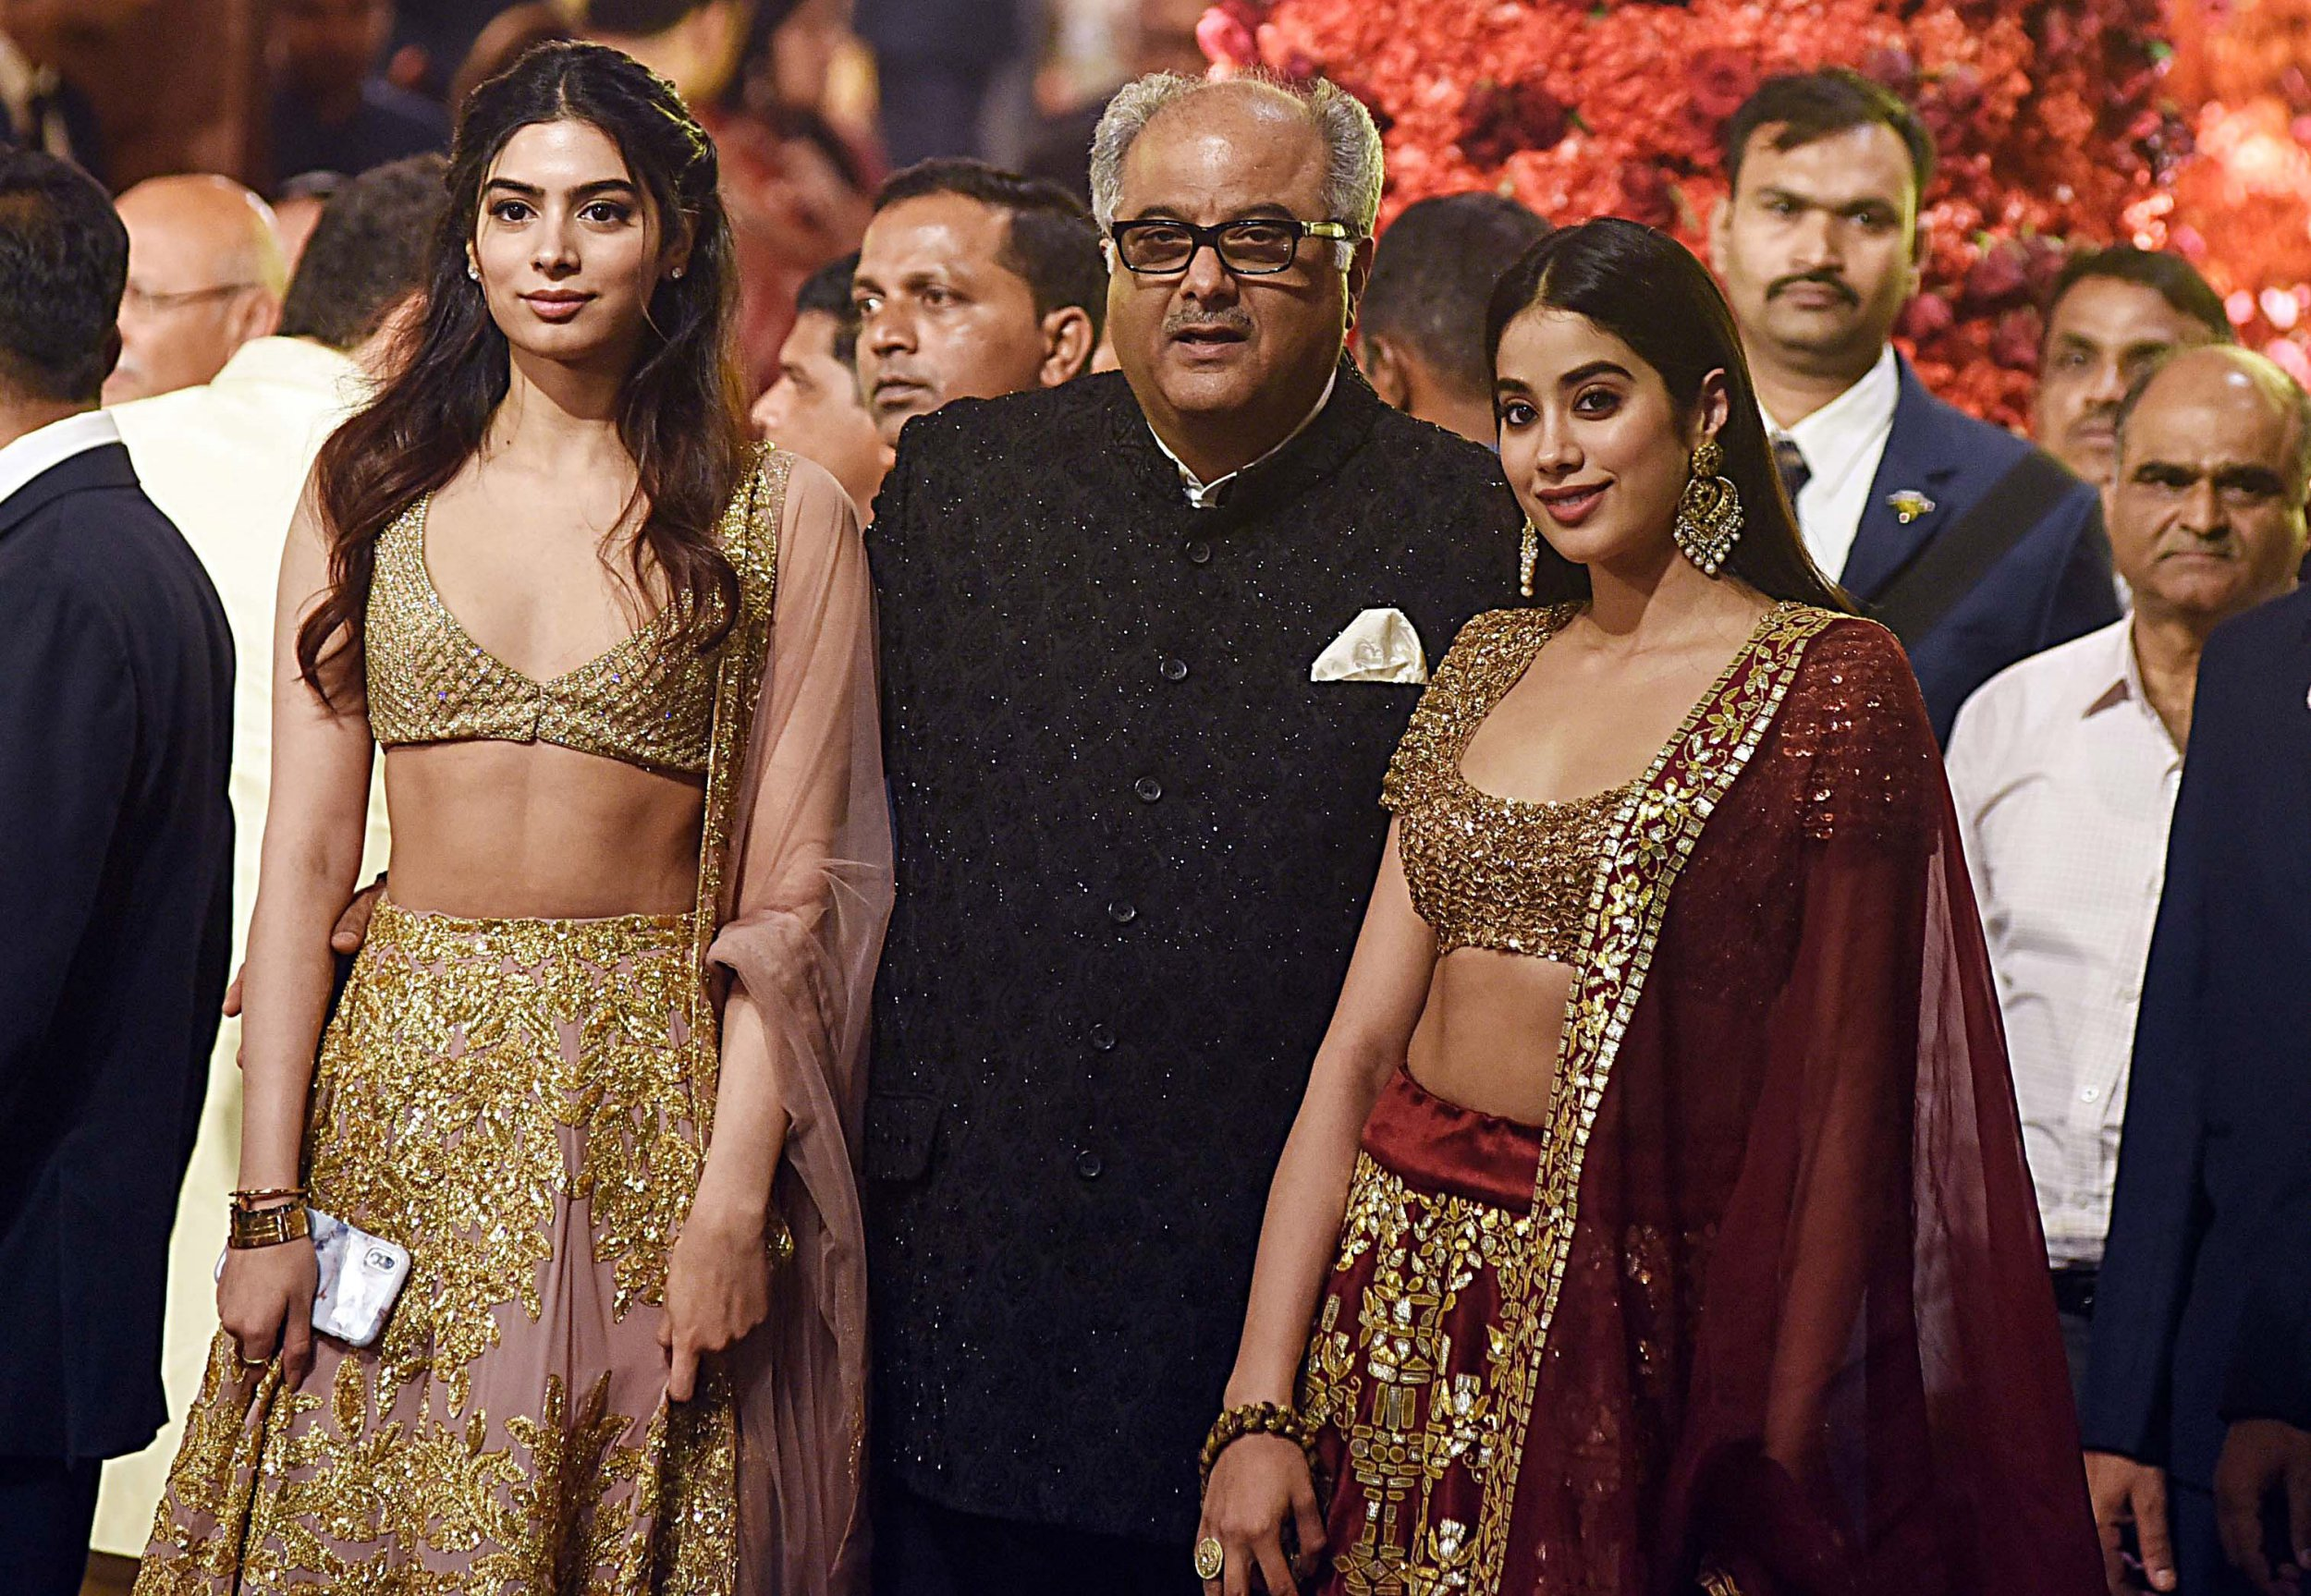 Indian Bollywood film producer Boney Kapoor (C) with his daughters, actresses Khushi (L) and Janhvi Kapoor (R), attend the wedding of Indian businesswoman Isha Ambani with Indian businessman Anand Piramal in Mumbai on December 12, 2018. - Isha Ambani, whose father is tycoon Mukesh Ambani, wedded Anand Piramal, son of Indian billionaire industrialist Ajay Piramal, in the Ambanis' 27-storey home in Mumbai. (Photo by - / AFP)-/AFP/Getty Images